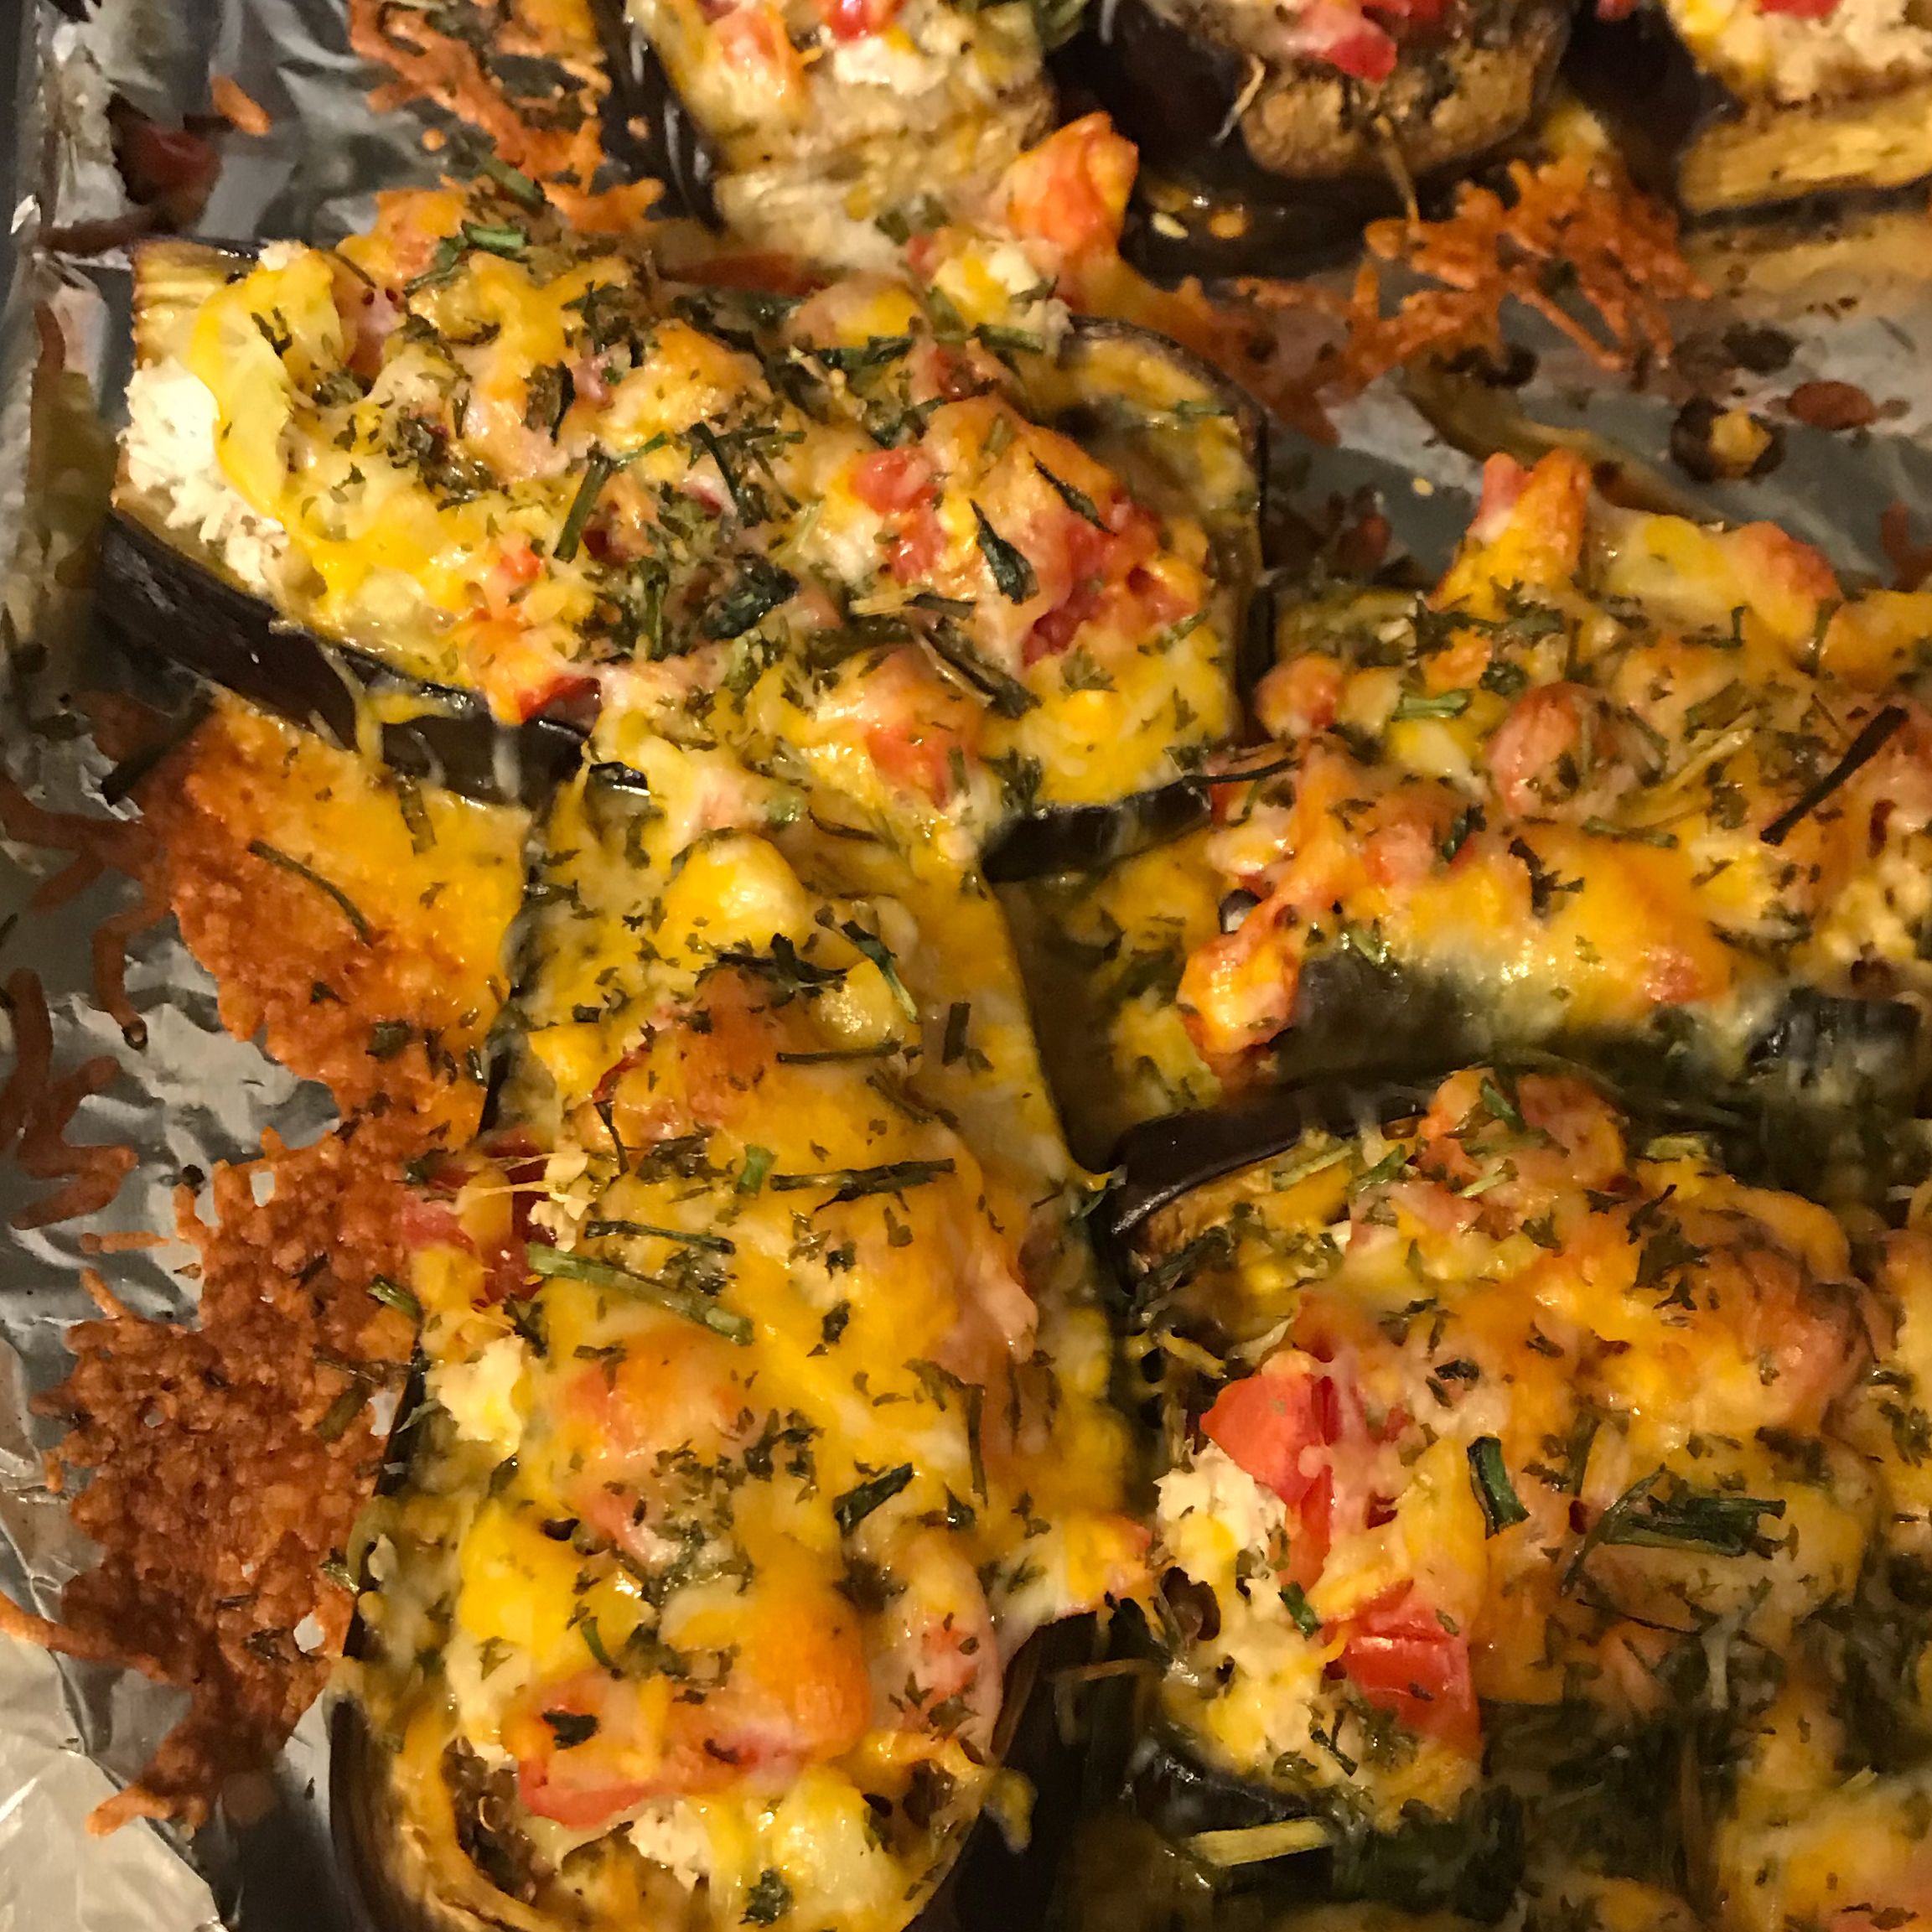 Eggplant Stuffed with Chicken and Cheese Jill W.